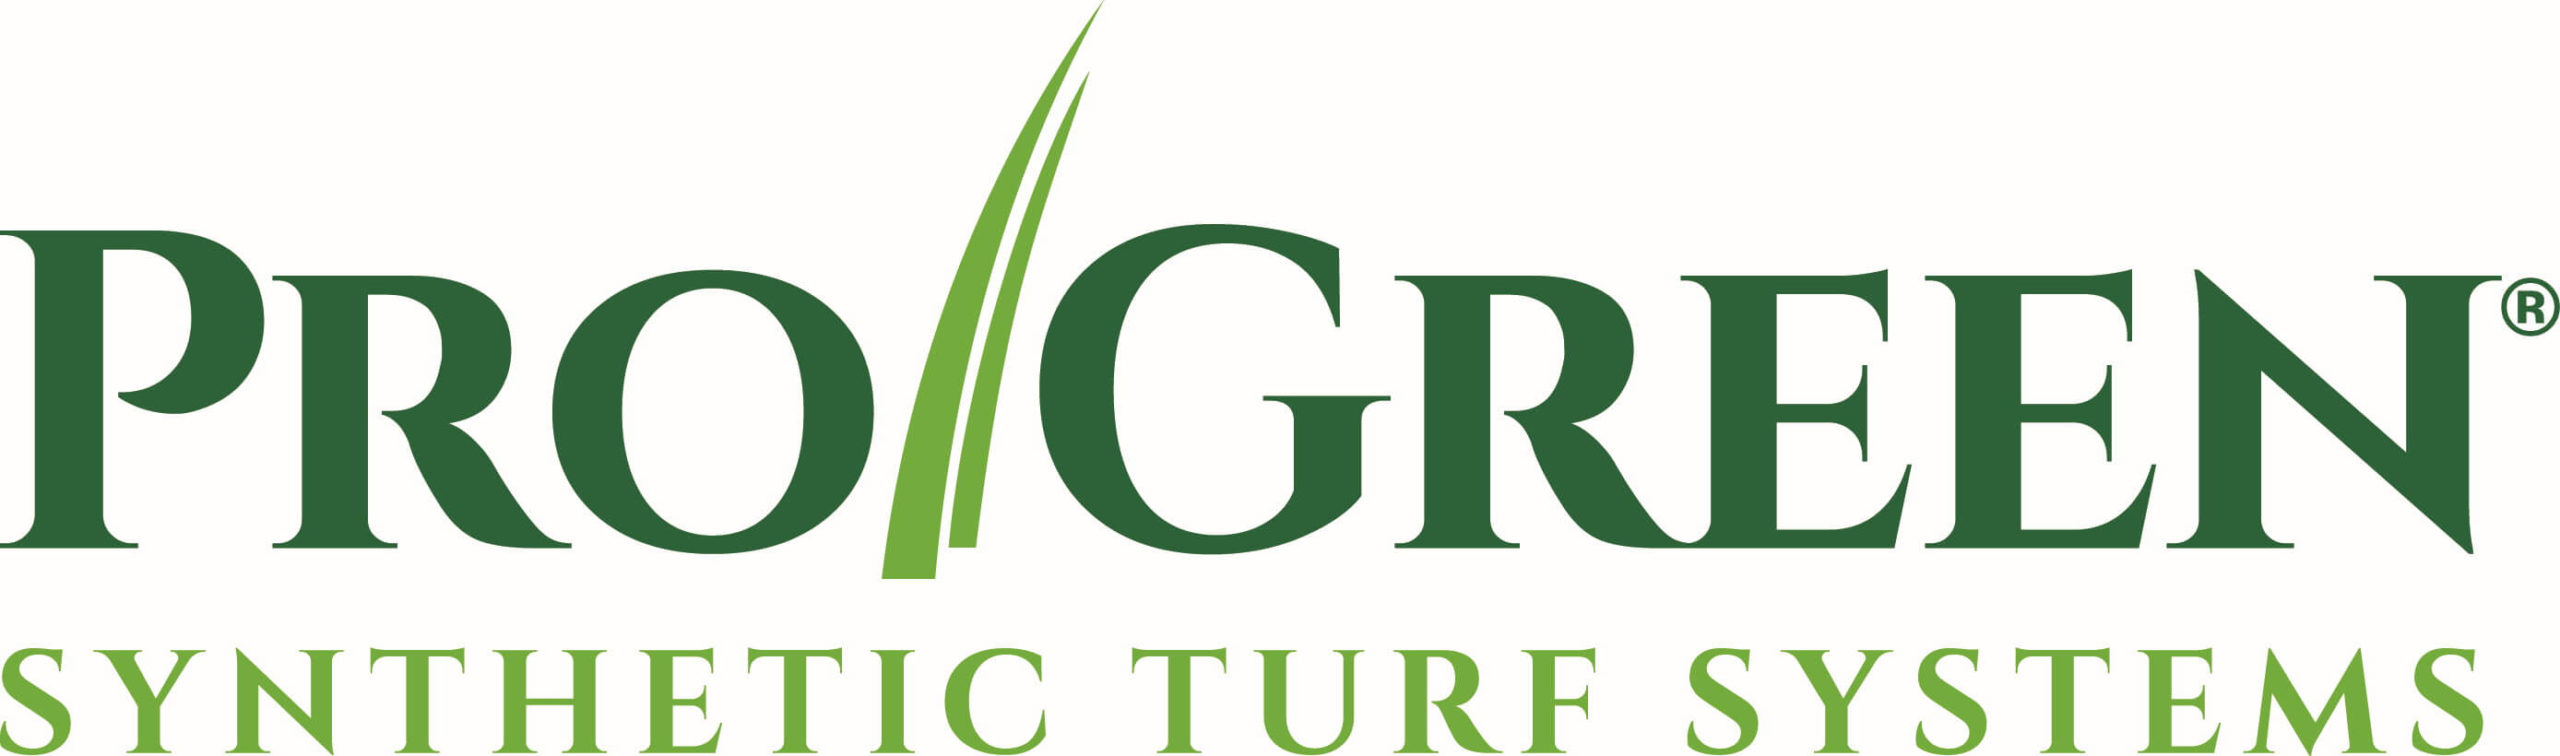 ProGreen Synthetic Turf Systems Logo